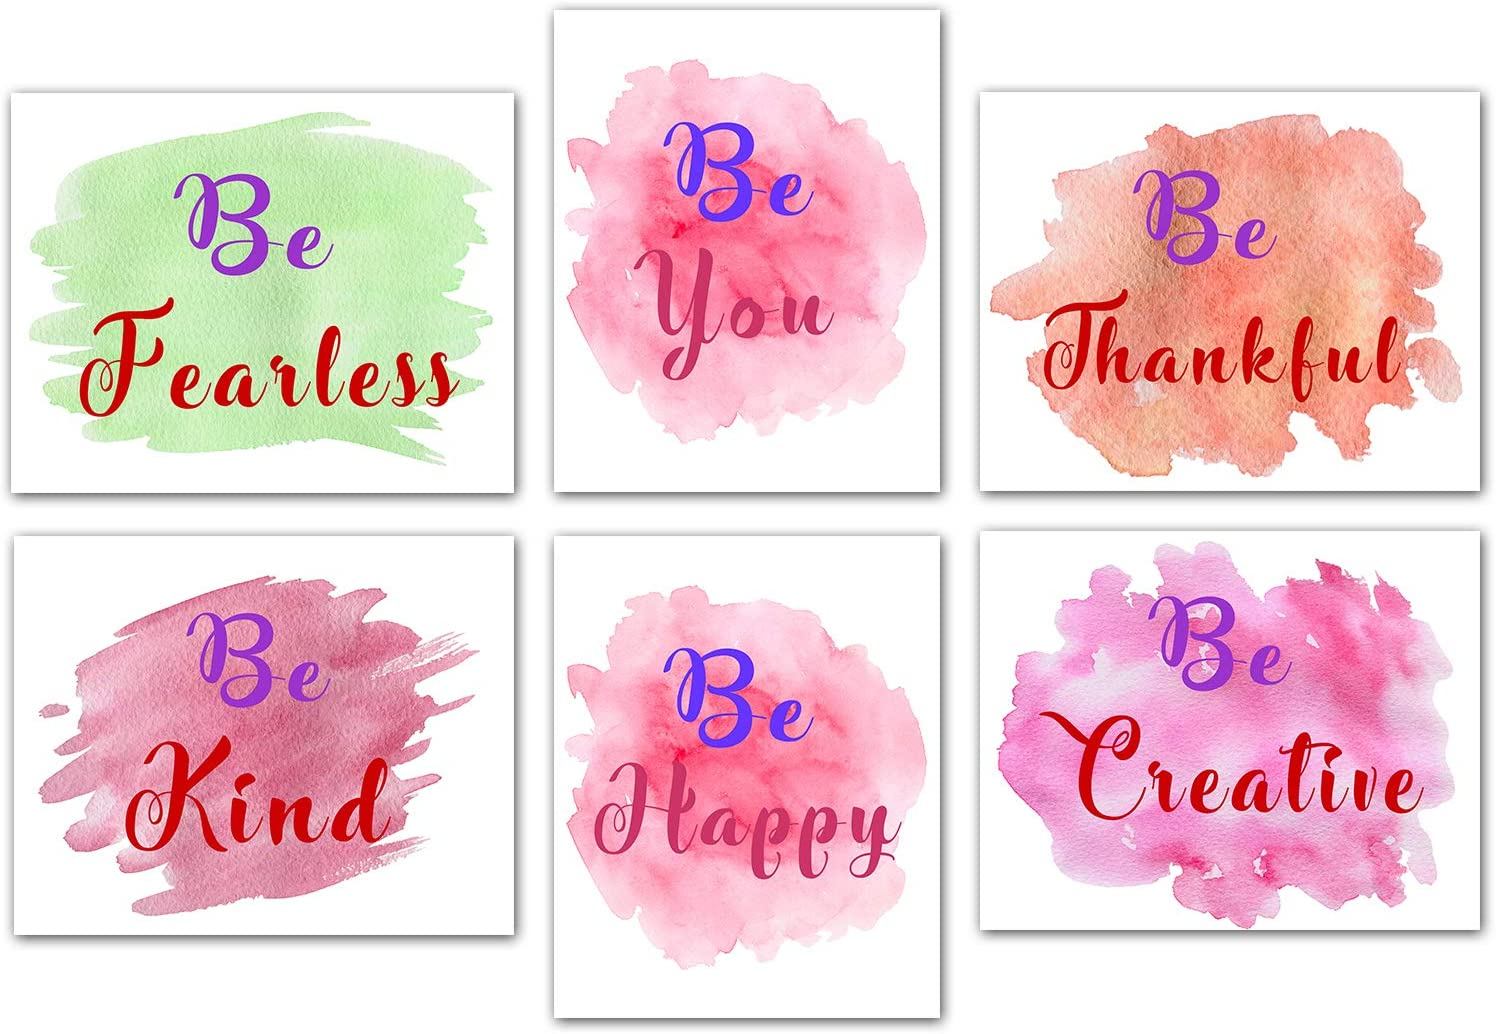 Inspirational Posters Positive Sayings Decor - Watercolor Words Wall Art Print Girl Bedroom Women Bathroom Home Decor Minimalist Printing Inspirational Pictures For Office Set Unframed 8''x10'' Canvas